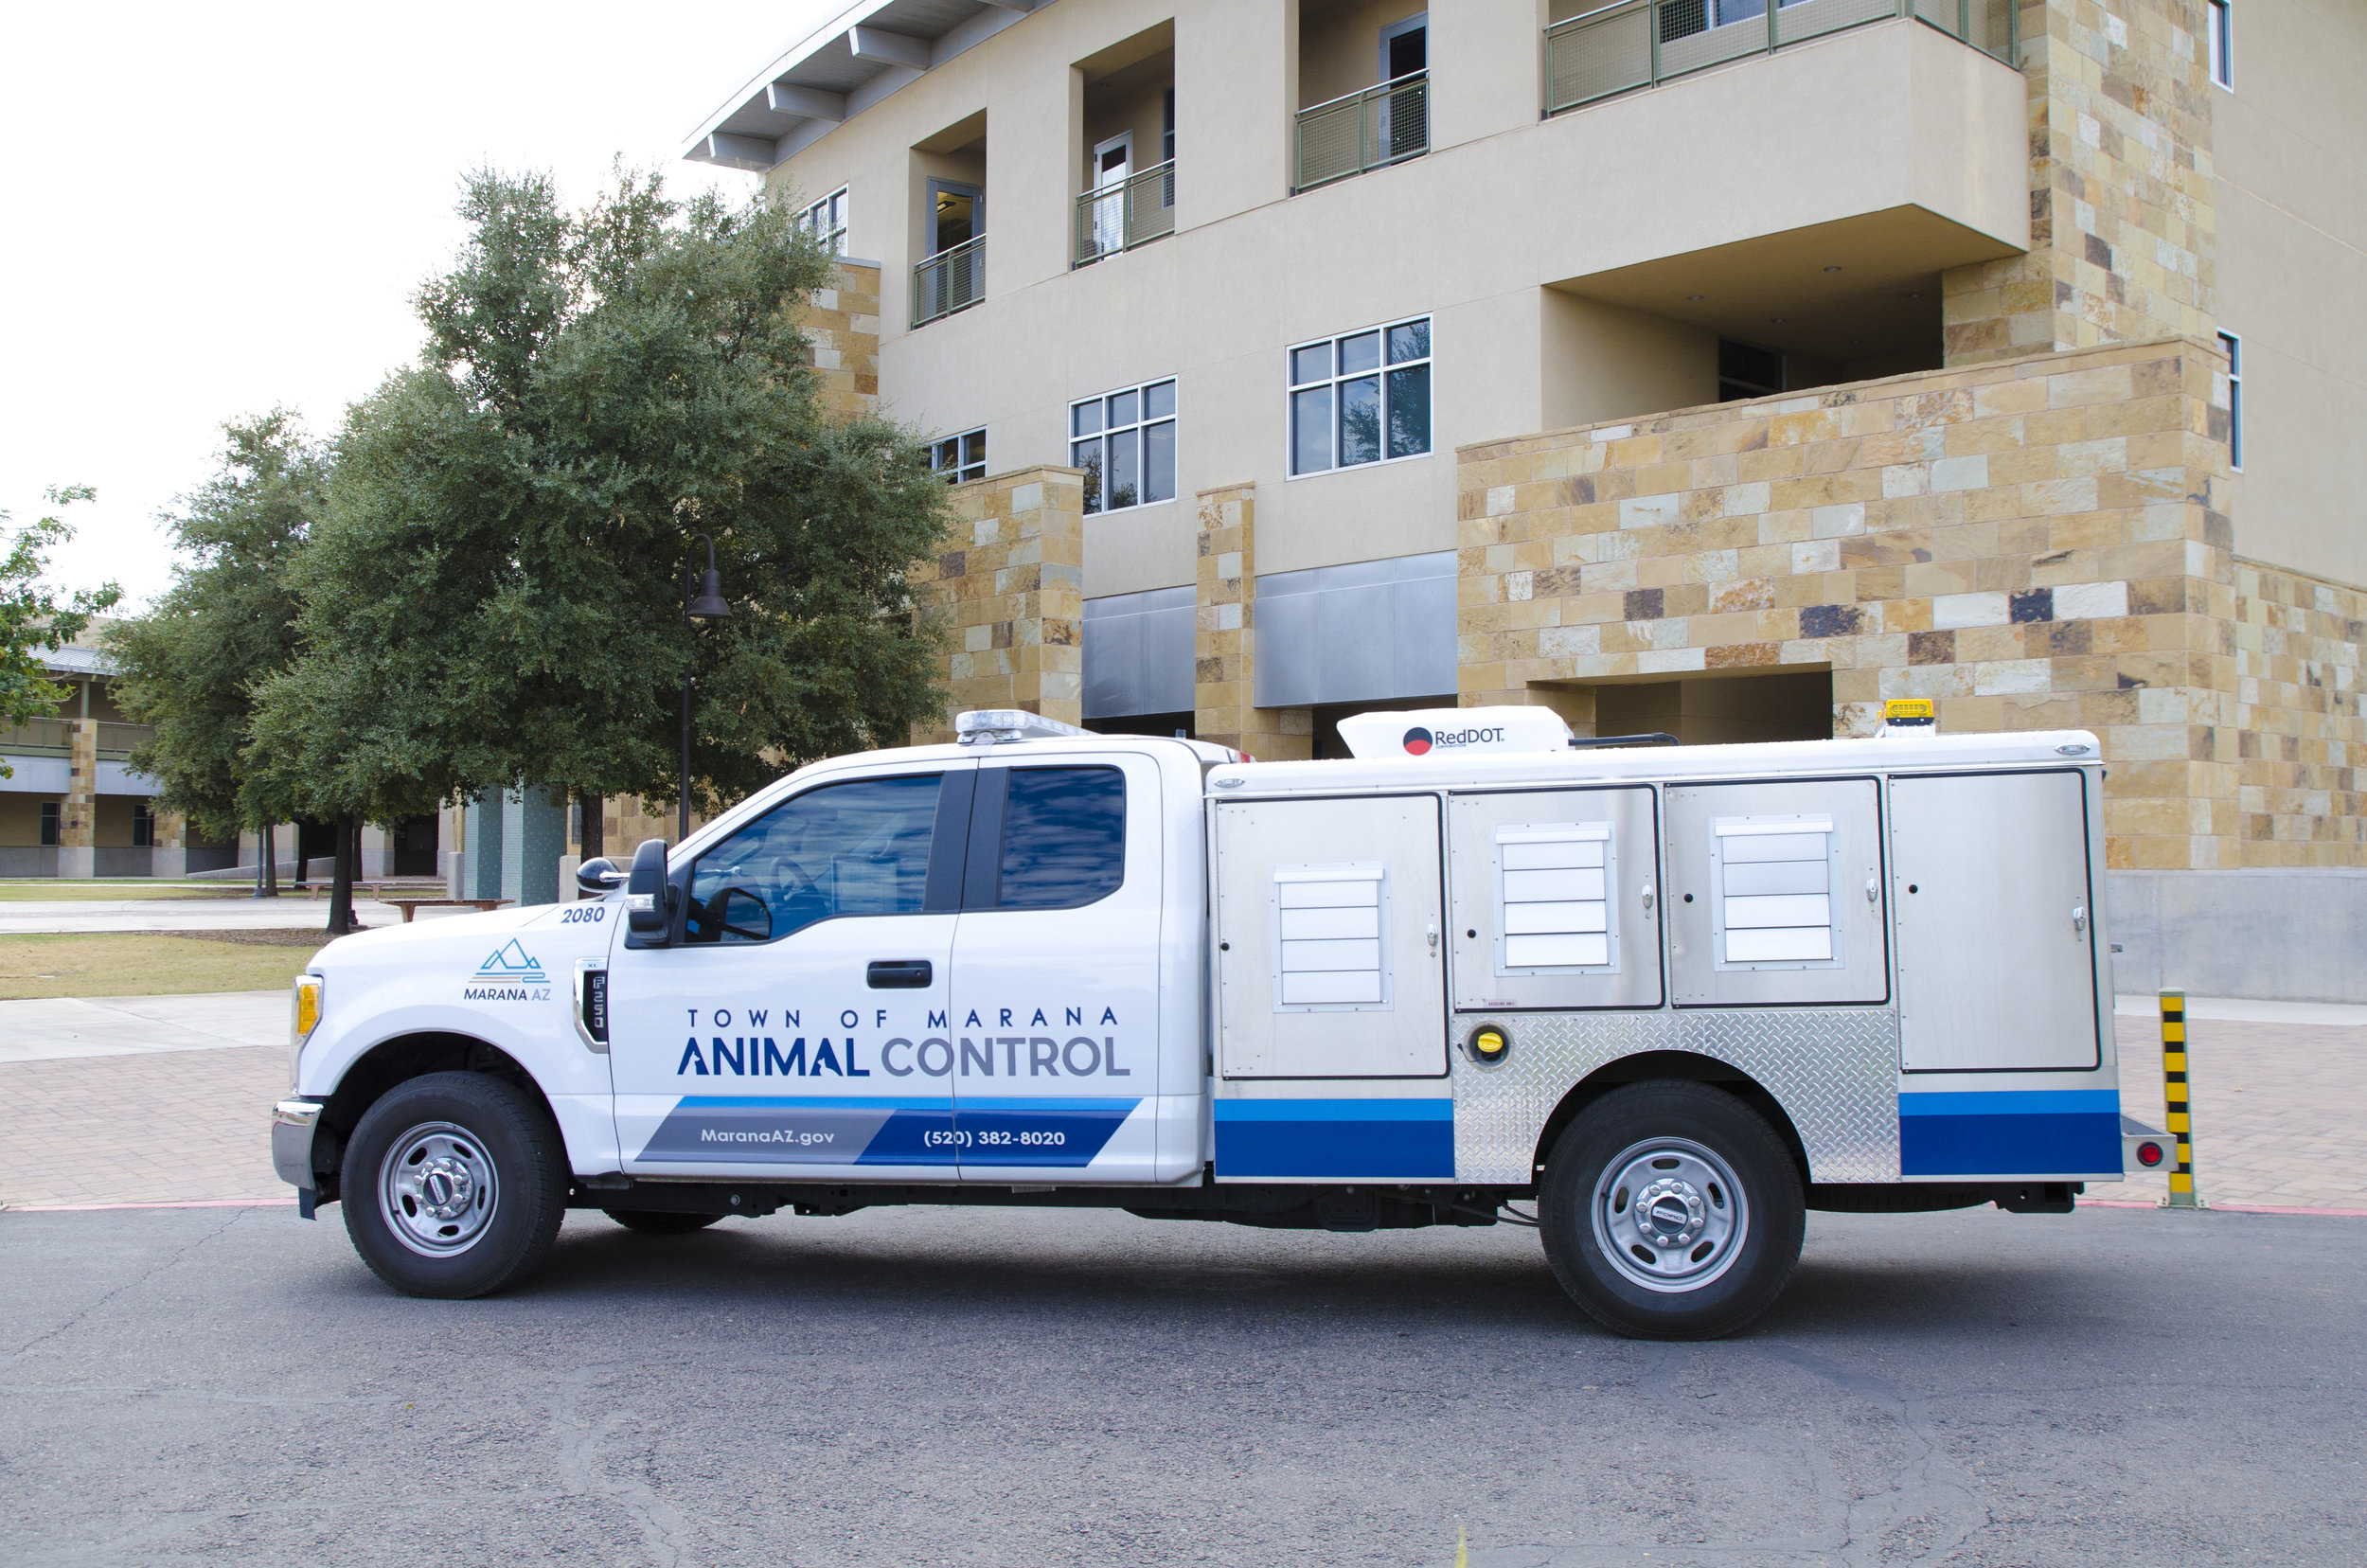 Animal Control     Town of Marana our animal control division has two full time animal control oFFICers   ACO s  to respond to animal issues within the marana TOWN LIMITS